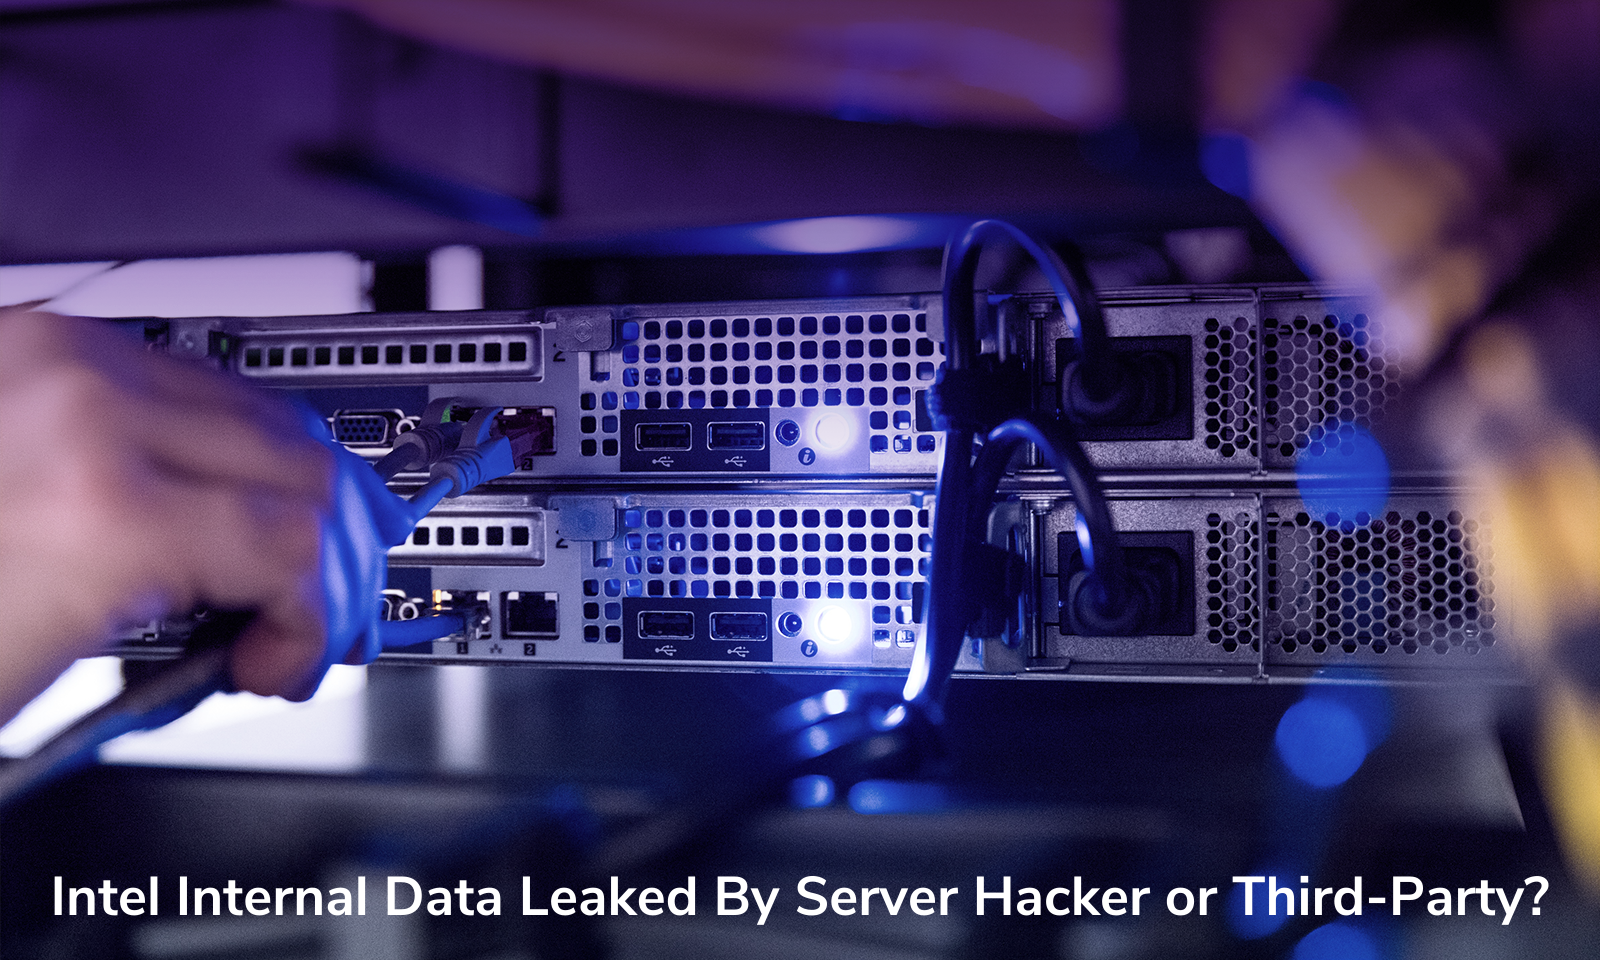 Intel Internal Data Leaked By Server Hacker or Third-Party?